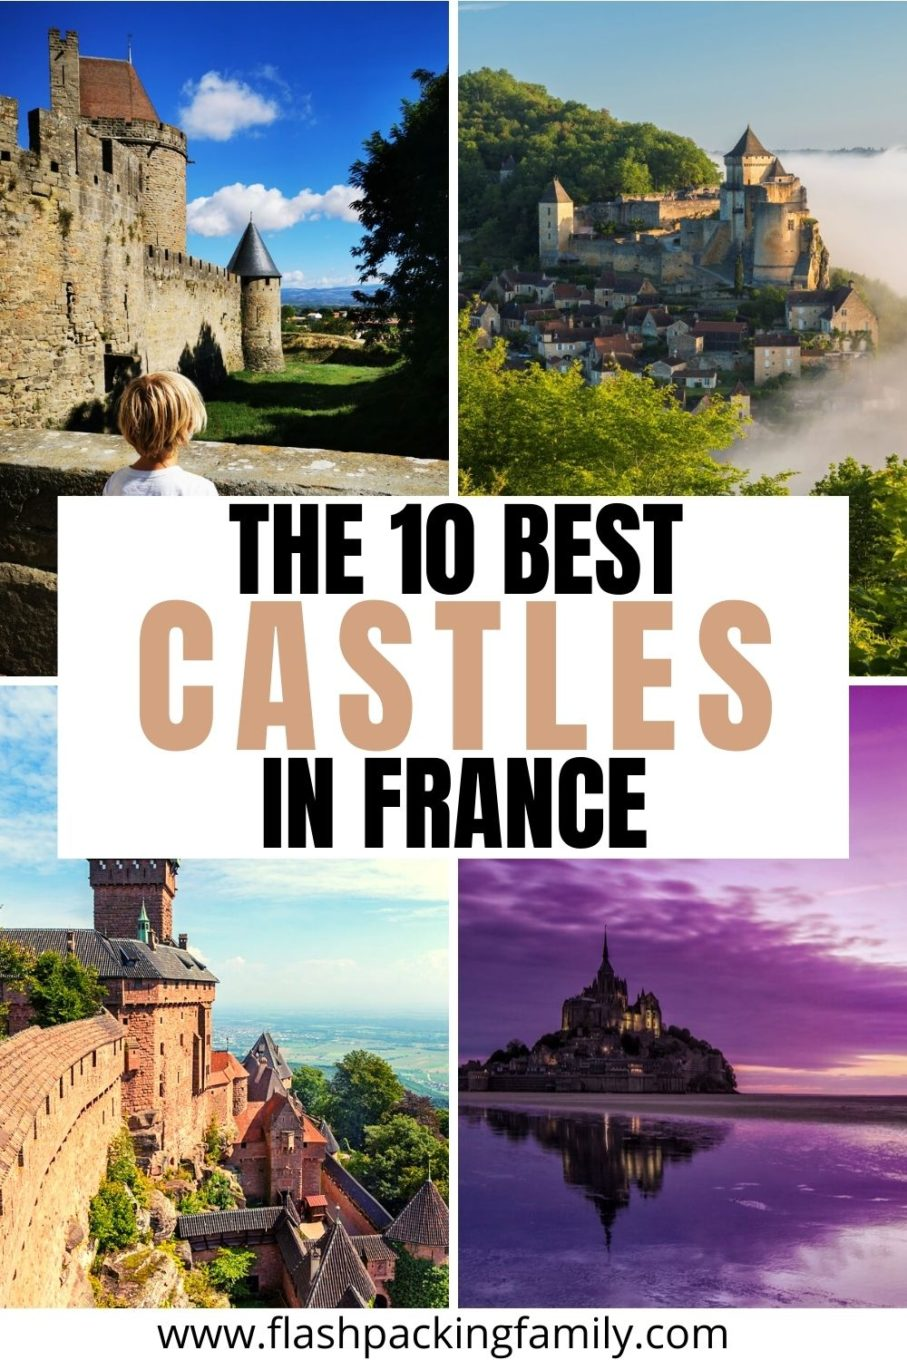 The 10 Best Castles in France.